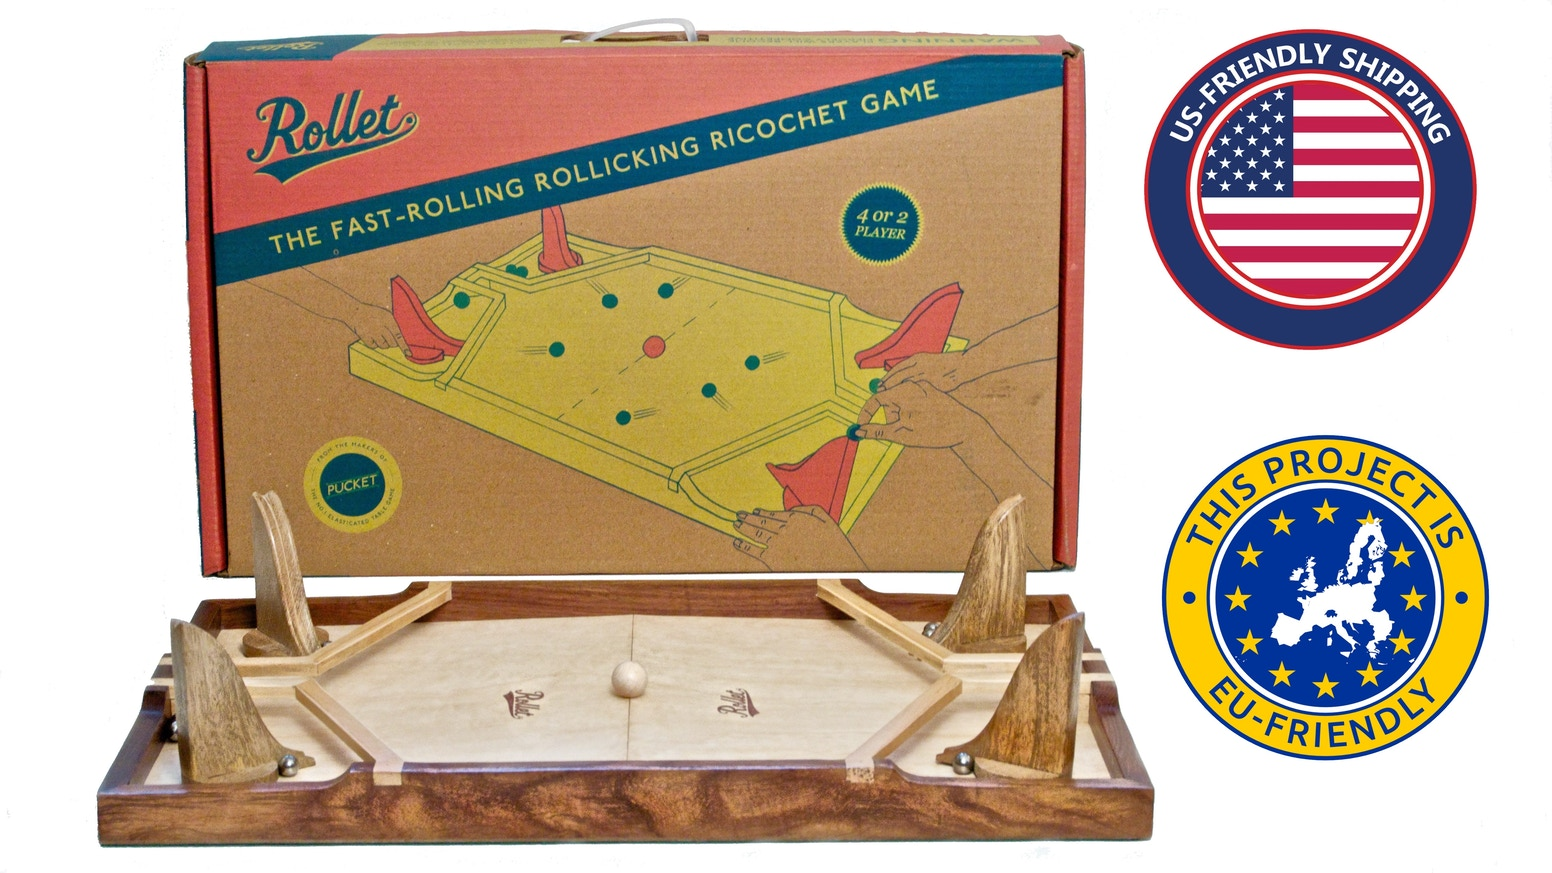 Rollet is a beautiful frantic wooden dexterity game. It's easy to learn, difficult to master, and keeps players whooping and giggling.